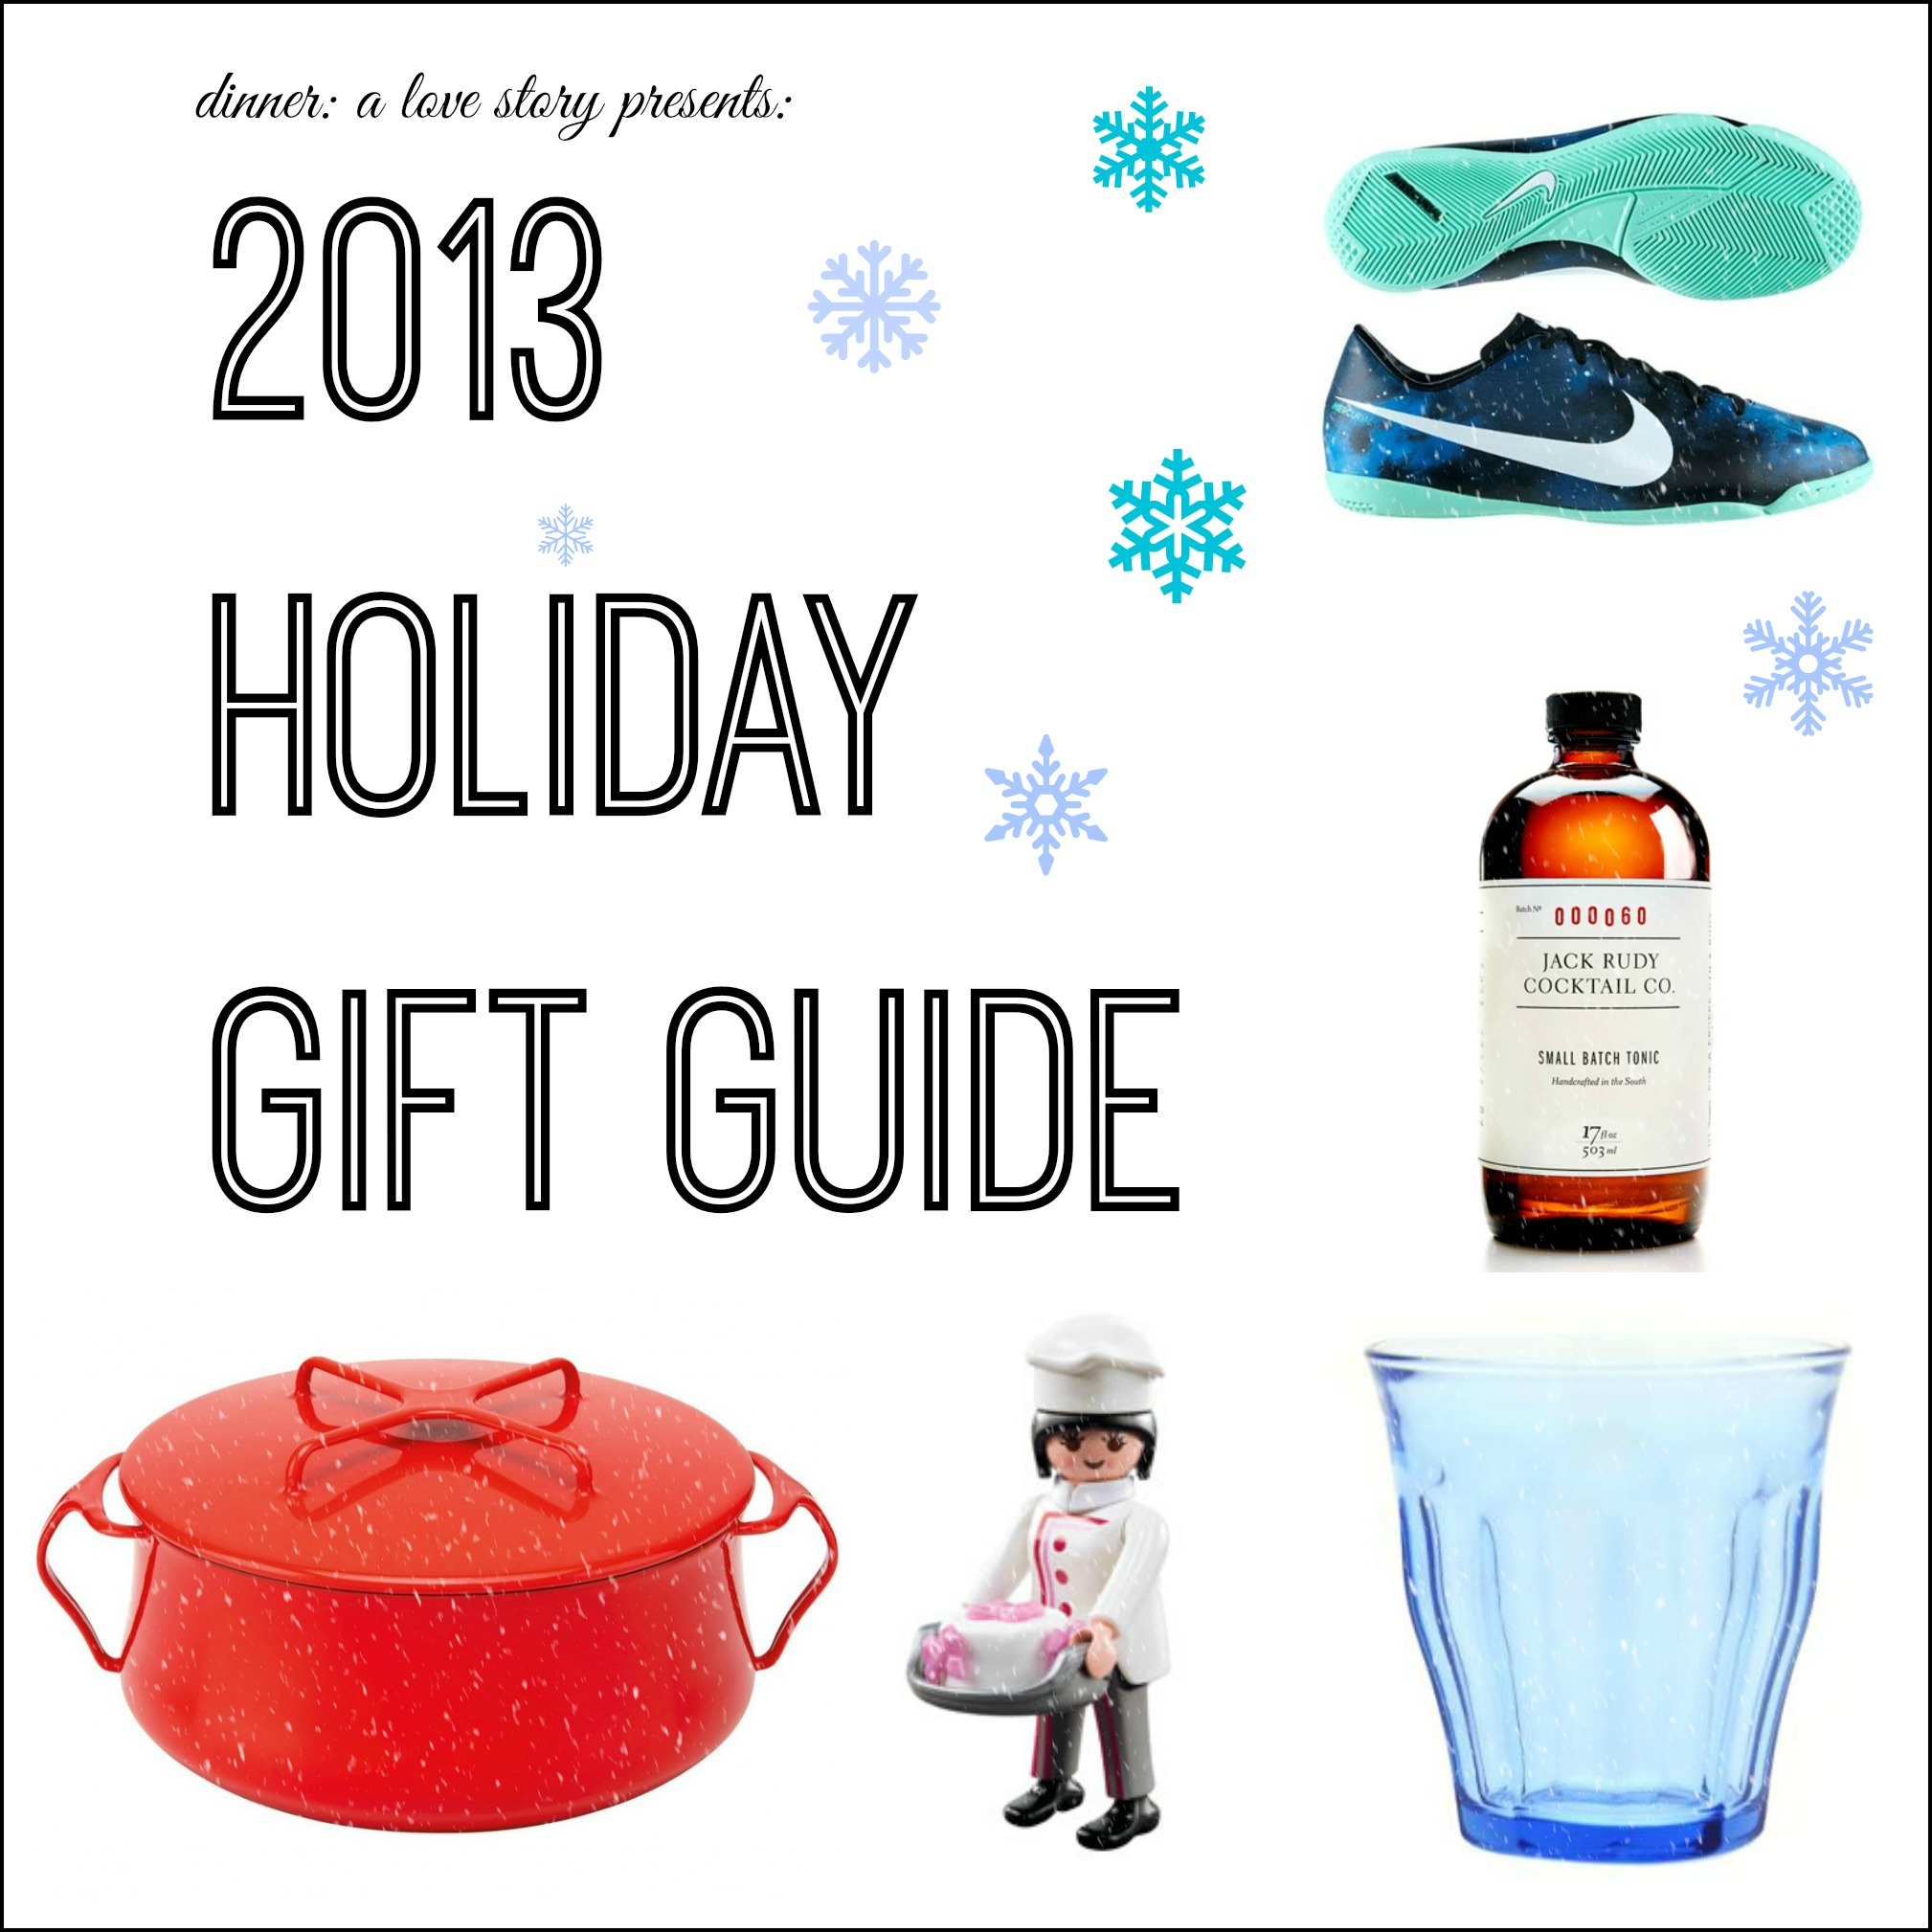 Gift guide 2013 array dinner a love story holiday gift guide 2013 dinner a love rh dinneralovestory com fandeluxe Choice Image